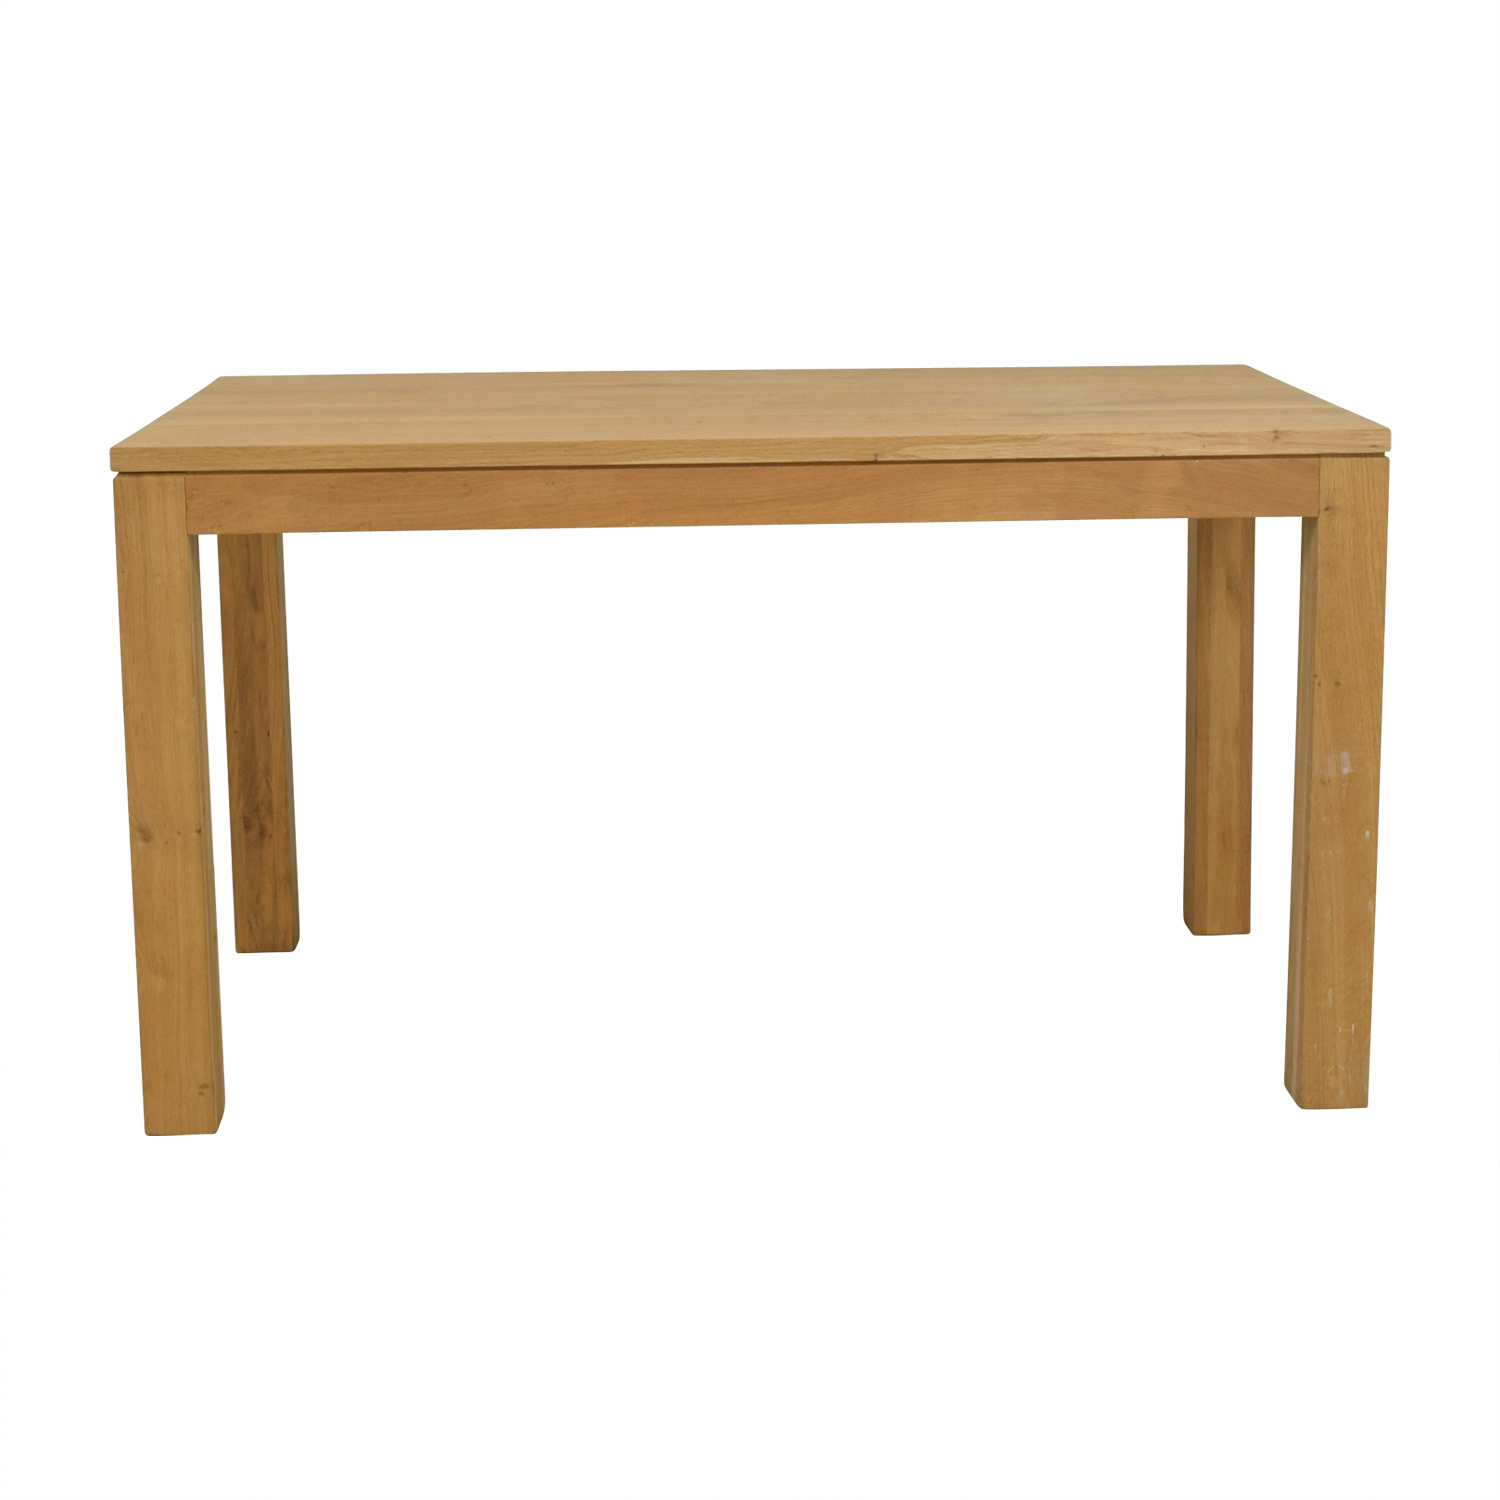 ABC Carpet & Home ABC Carpet & Home White Oak Dining Table dimensions